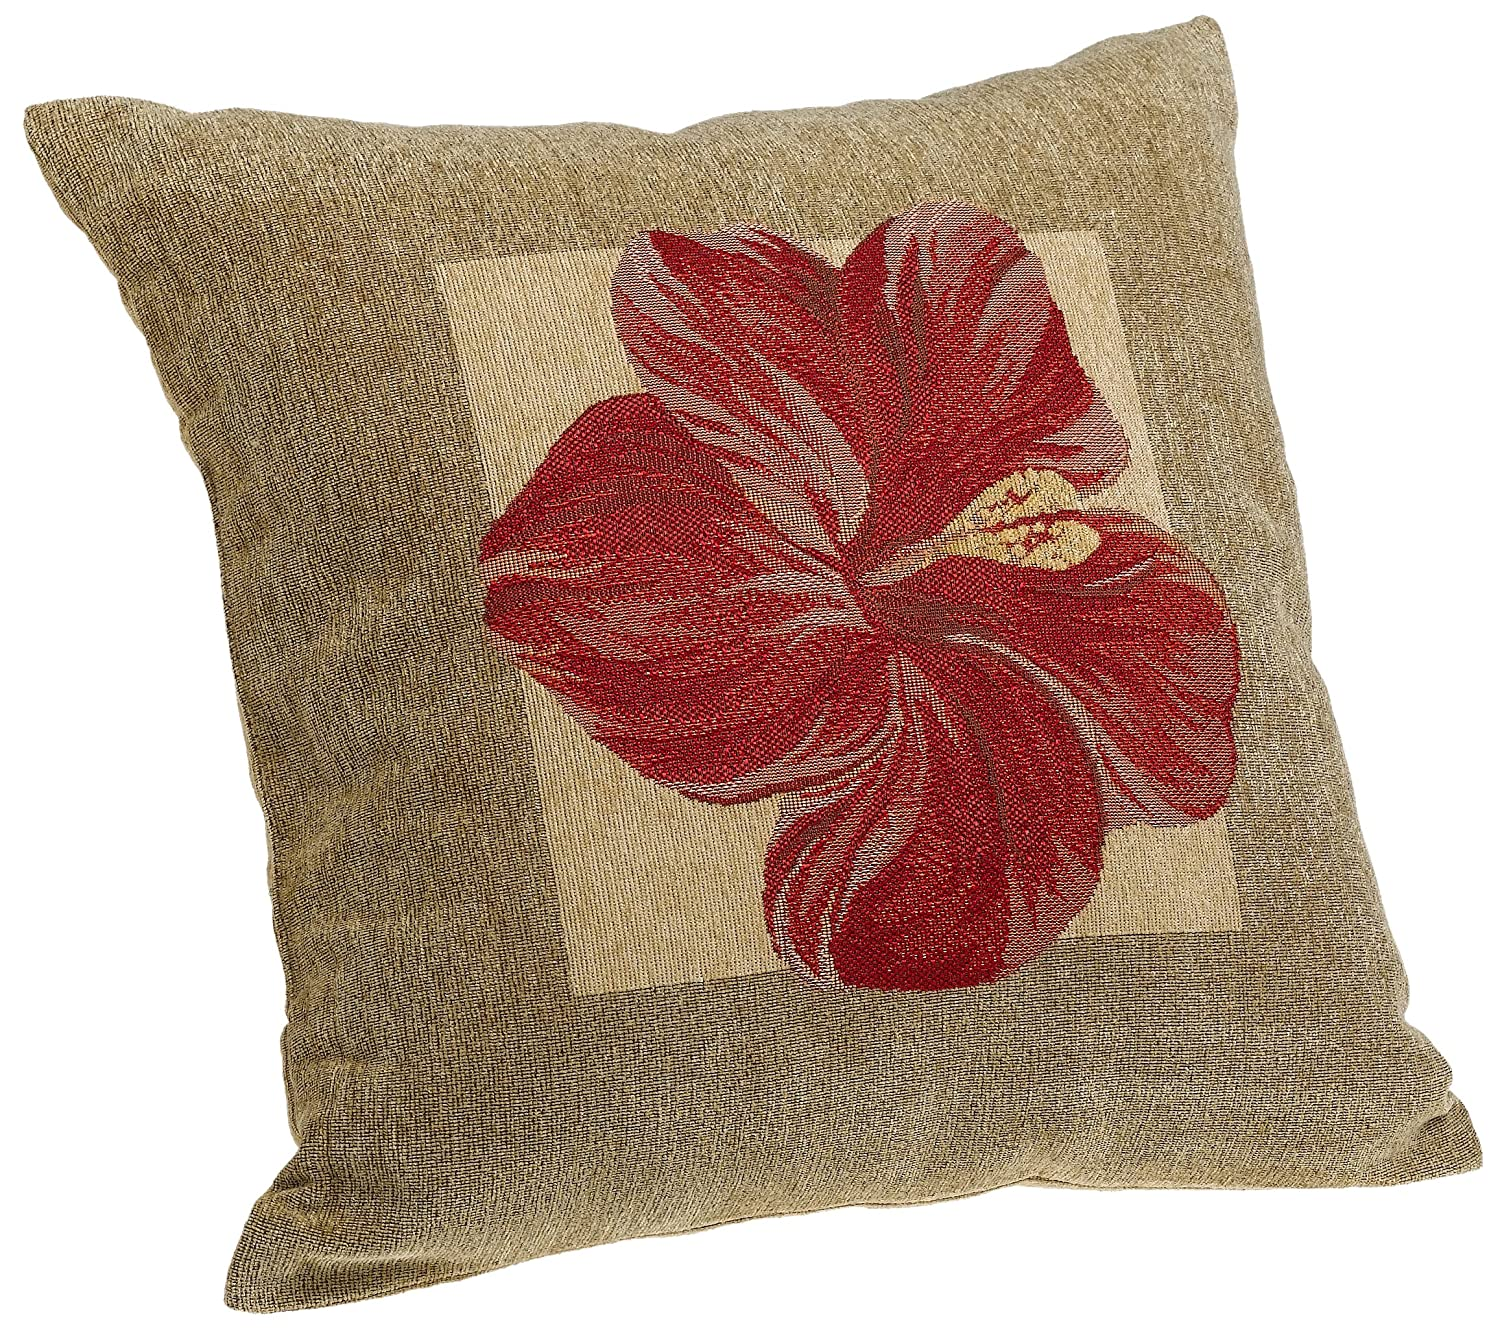 Brentwood Panama Jacquard Chenille 18-by-18-inch Knife Edge Decorative Pillow, R eBay